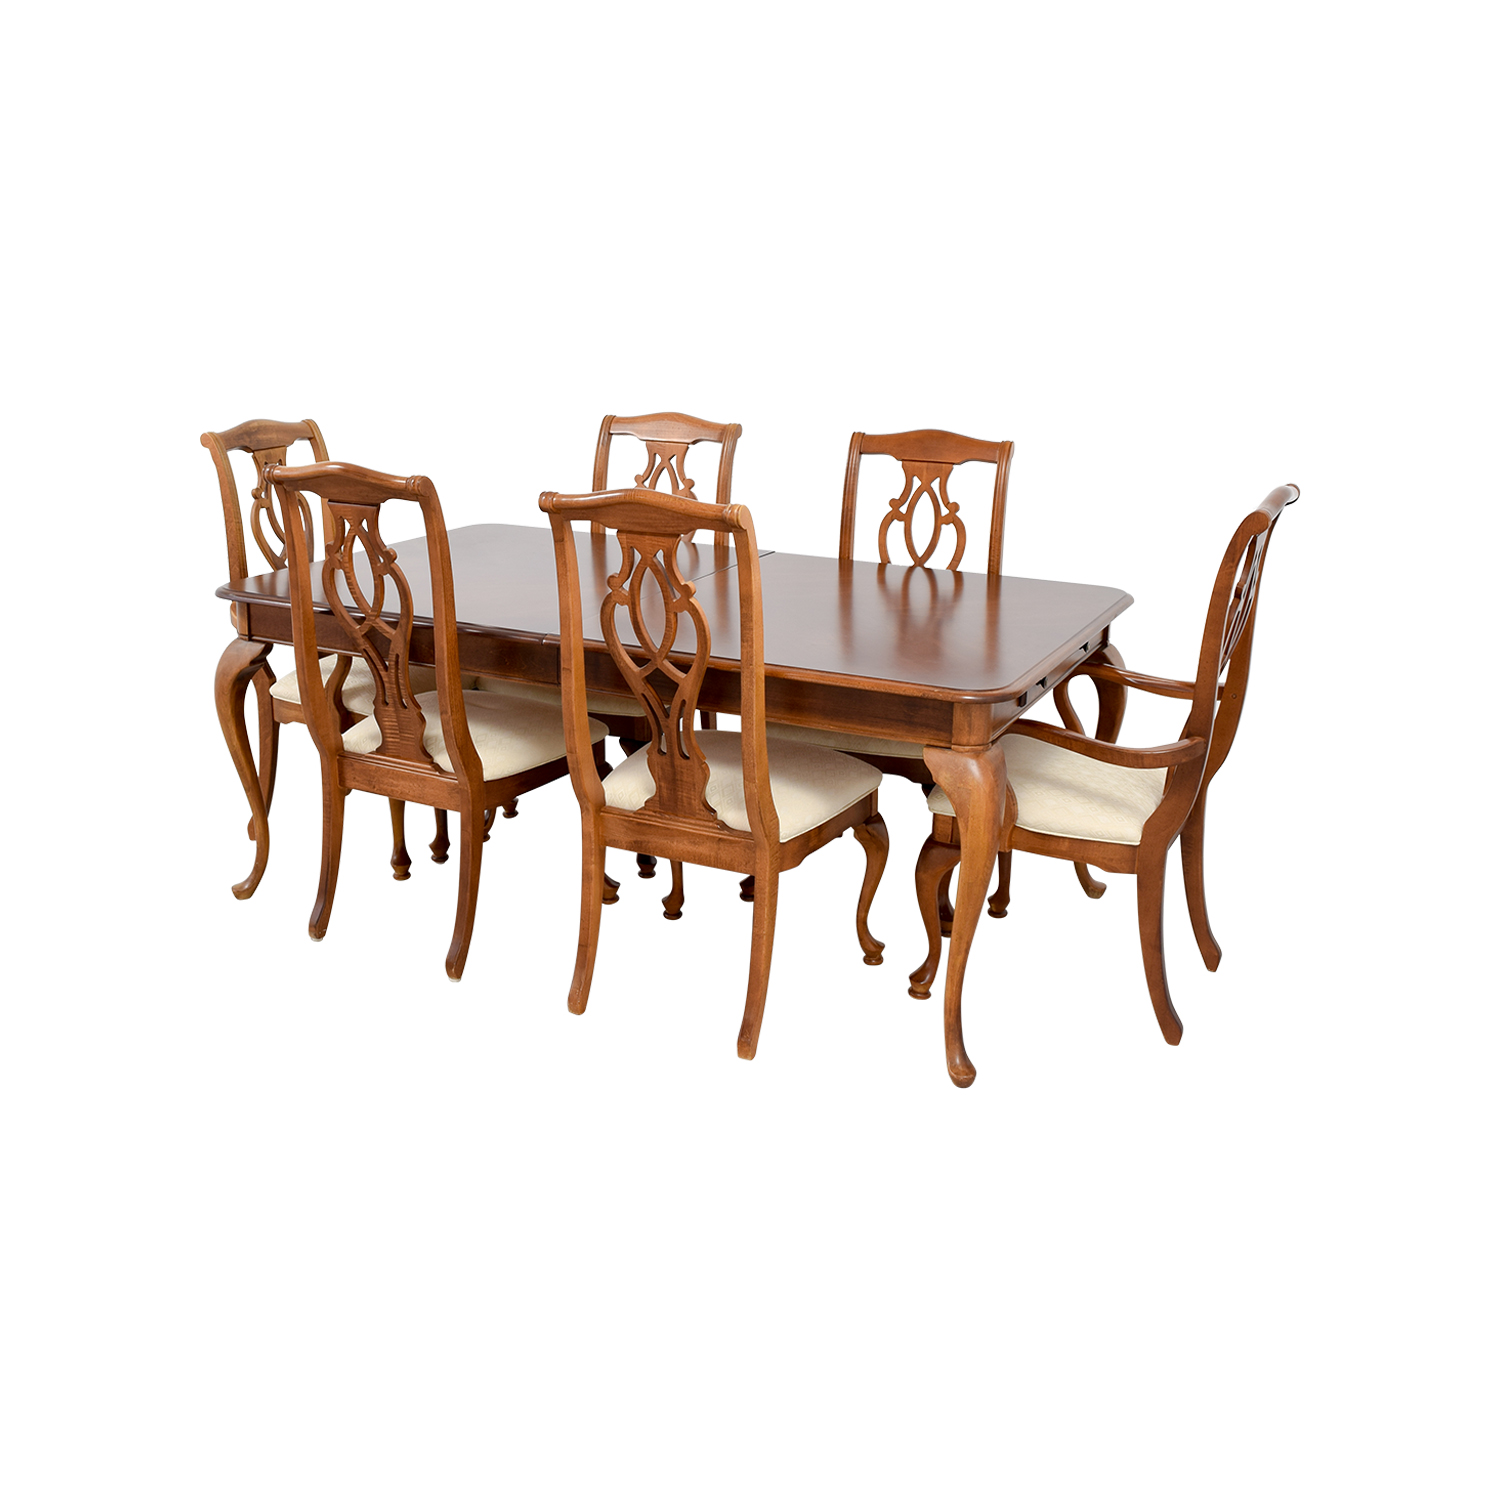 89% OFF - American Drew American Drew Dining Table Set / Tables